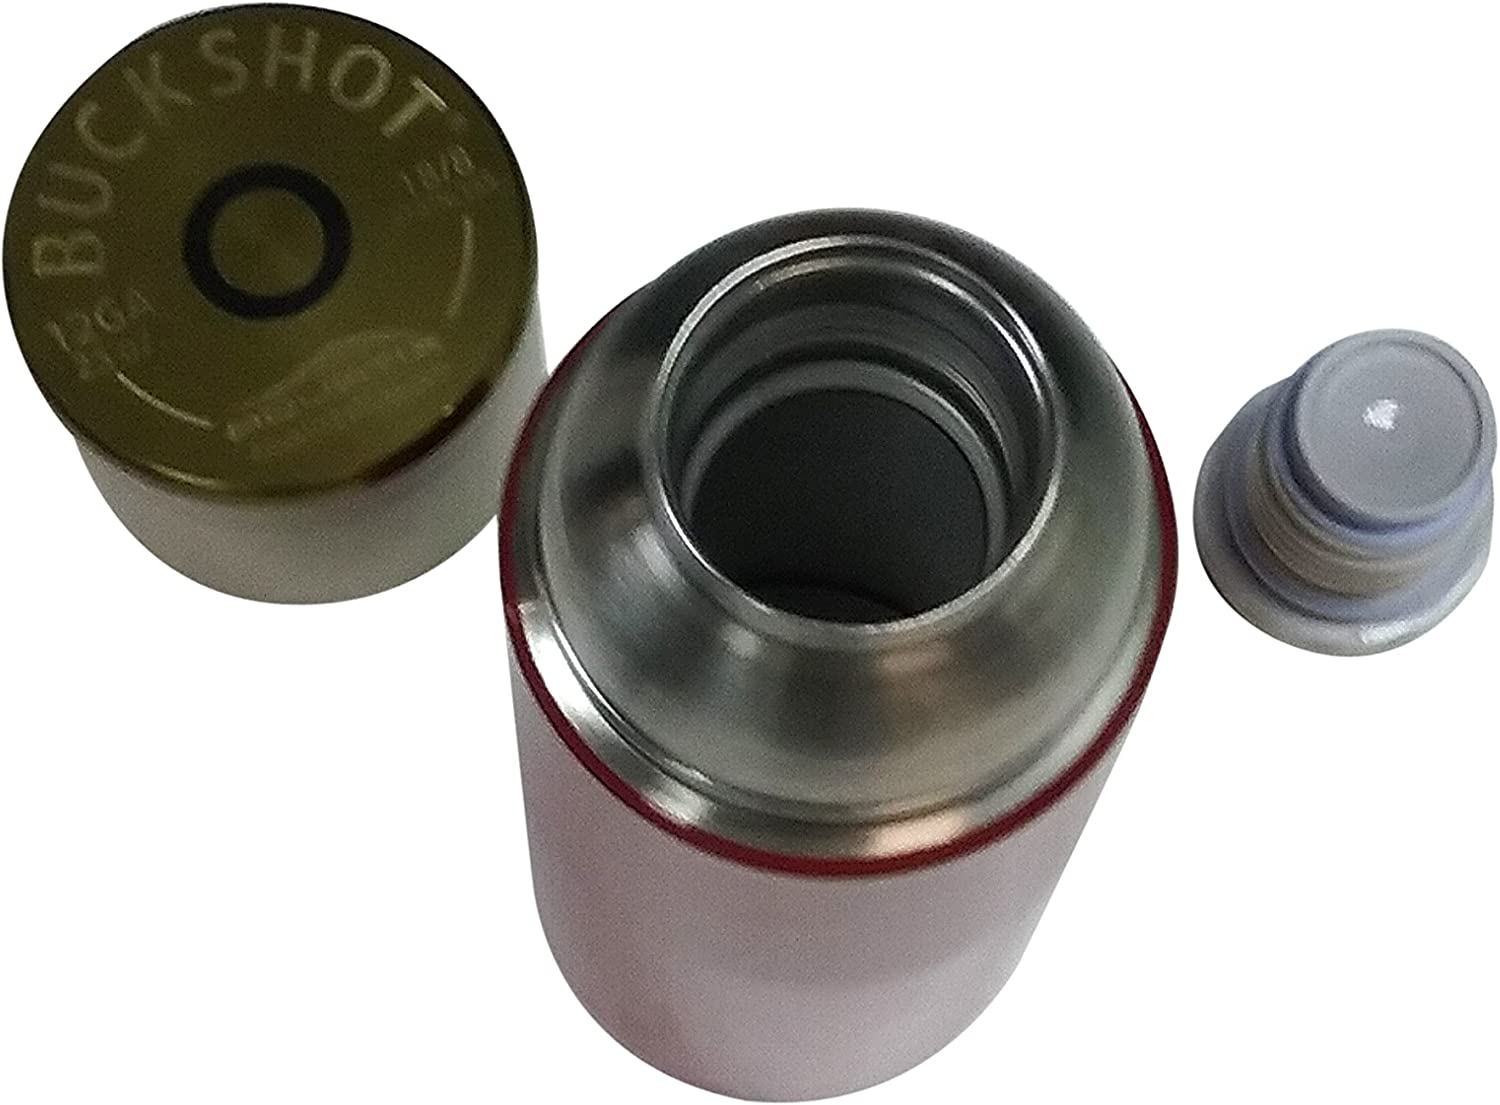 SKP Bamboo Heat Preservation Cup 304 Stainless Steel Vacuum Cup Bamboo Shell Heat Preservation Cup